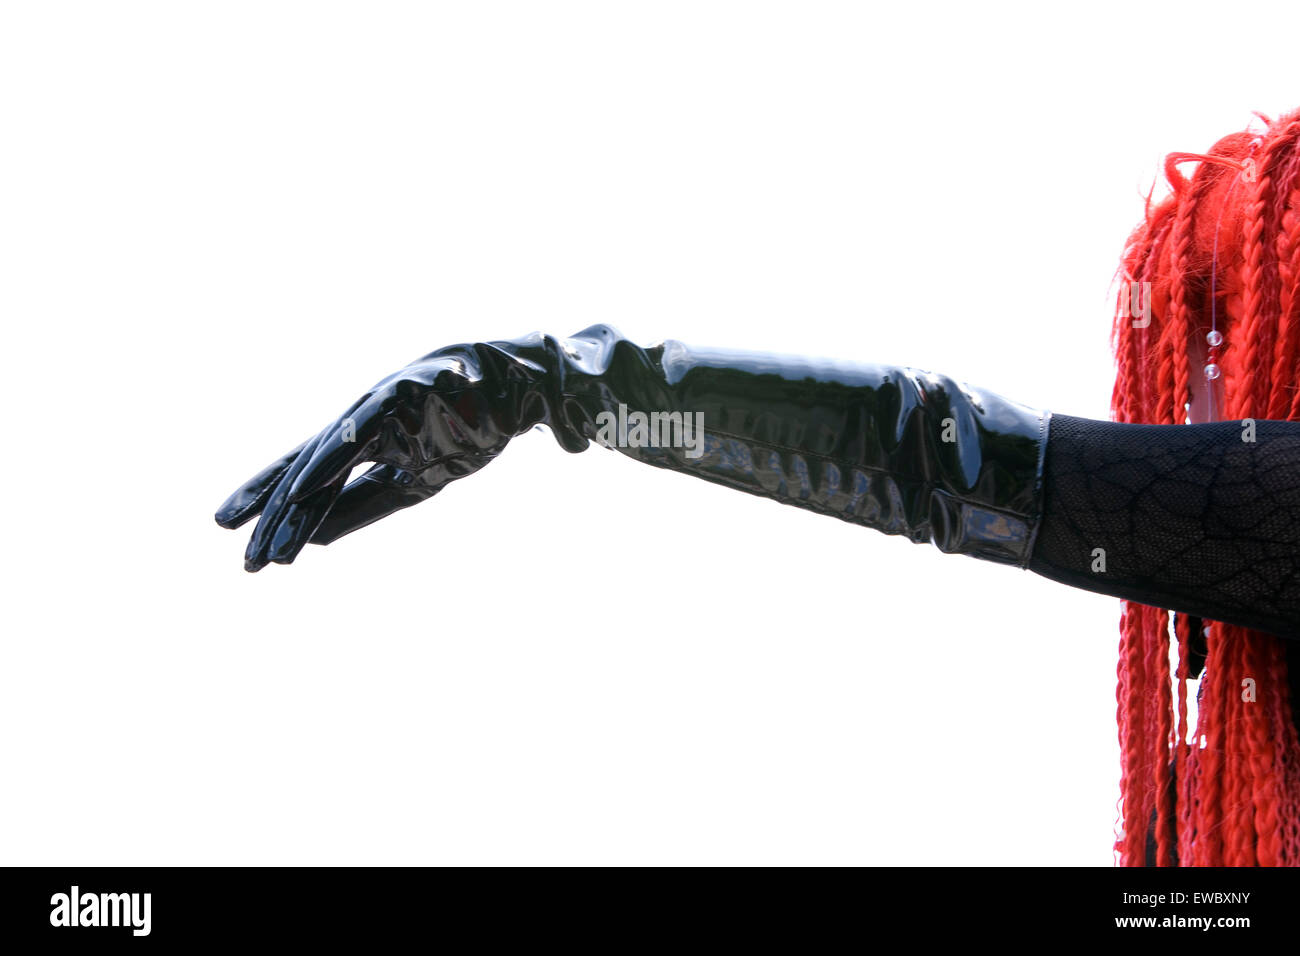 Outstretched black gloved arm and orange hair. - Stock Image